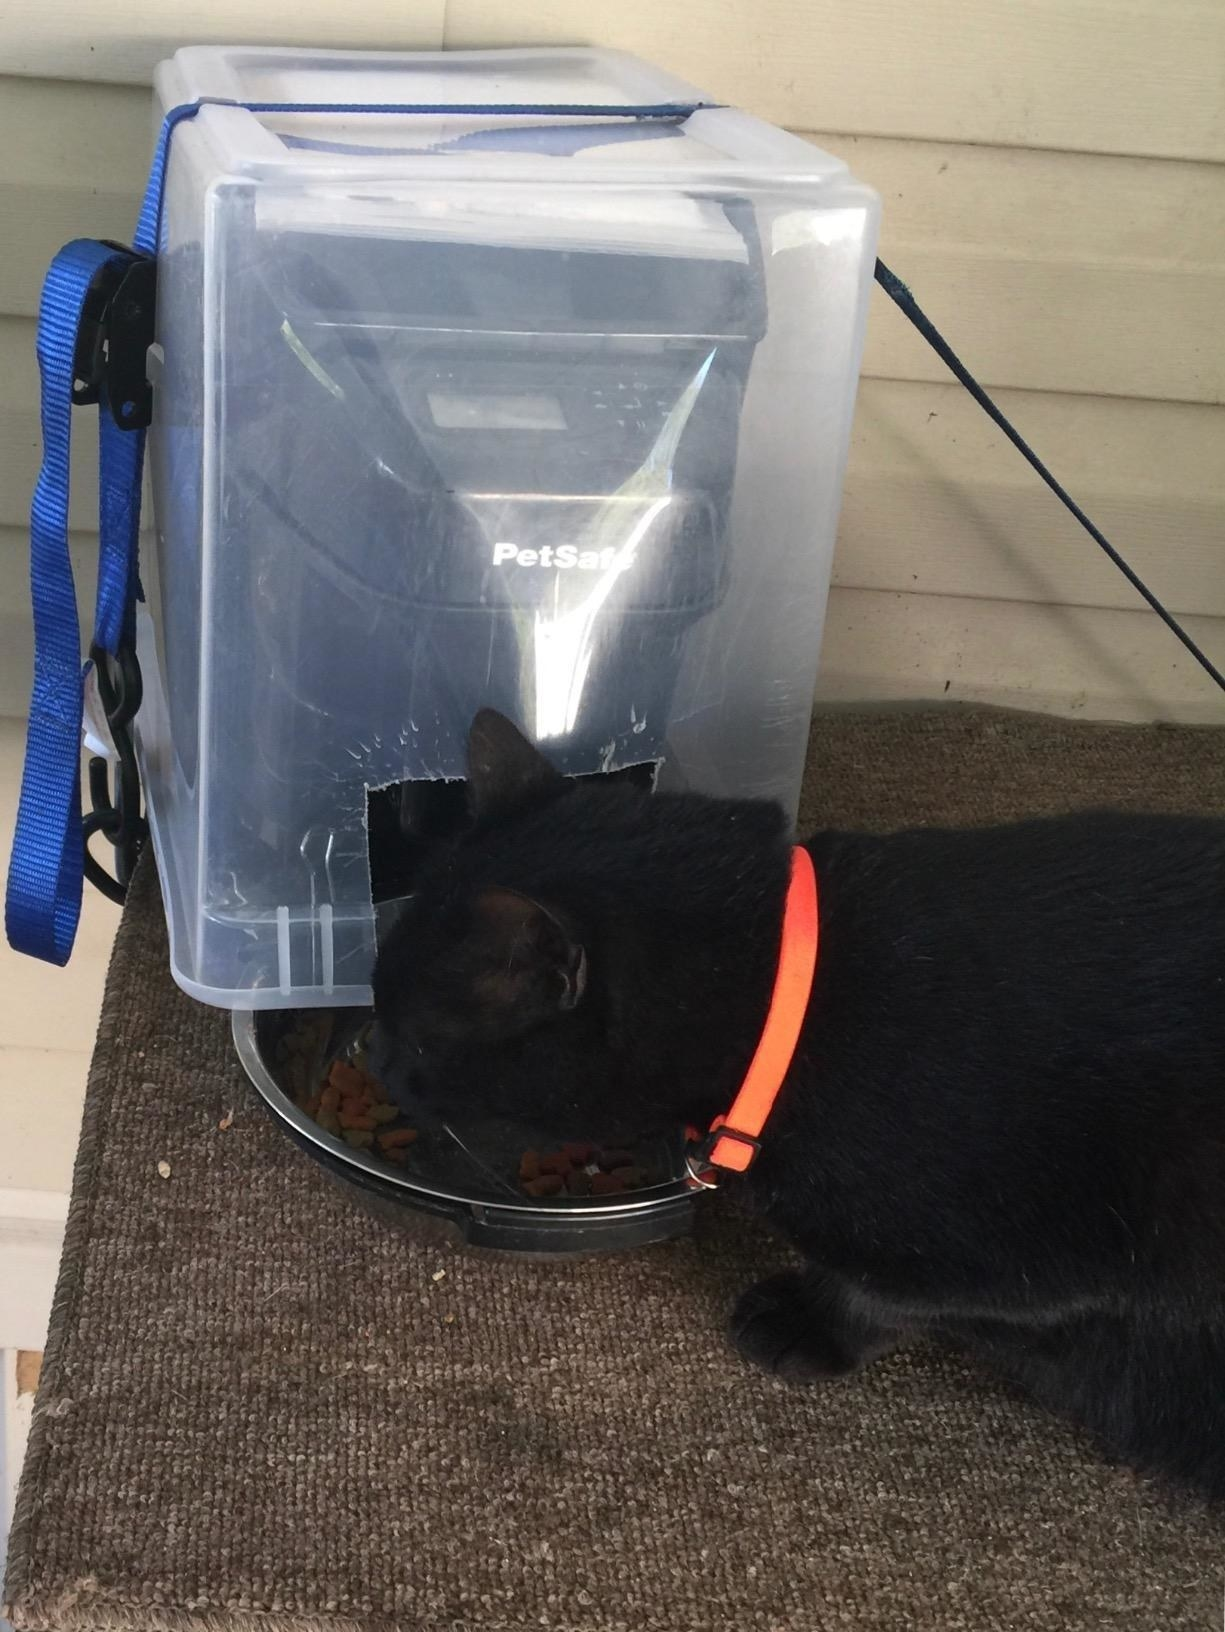 Review photo of cat enjoying the automatic food dispenser